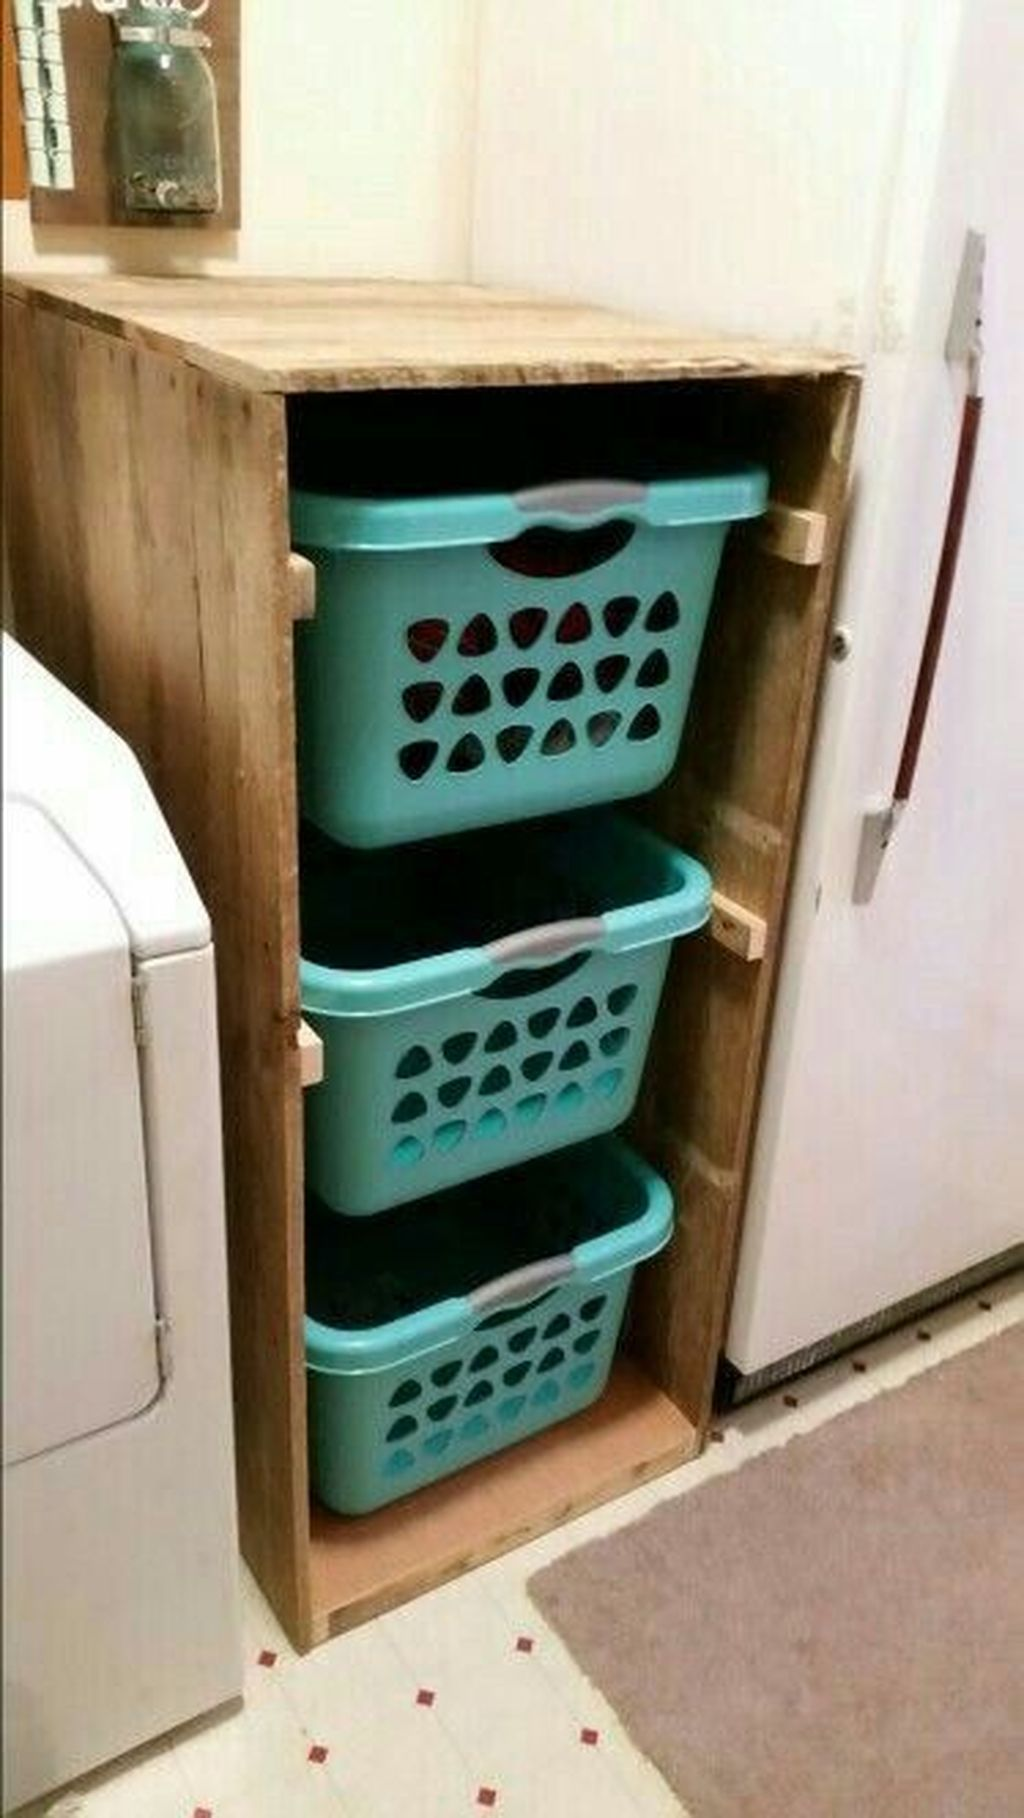 28 Diy Laundry Room Storage Center The Laundry Room Is An Excellent Place To Experiment With Design Laund Diy Laundry Room Storage Laundry Room Diy Home Diy